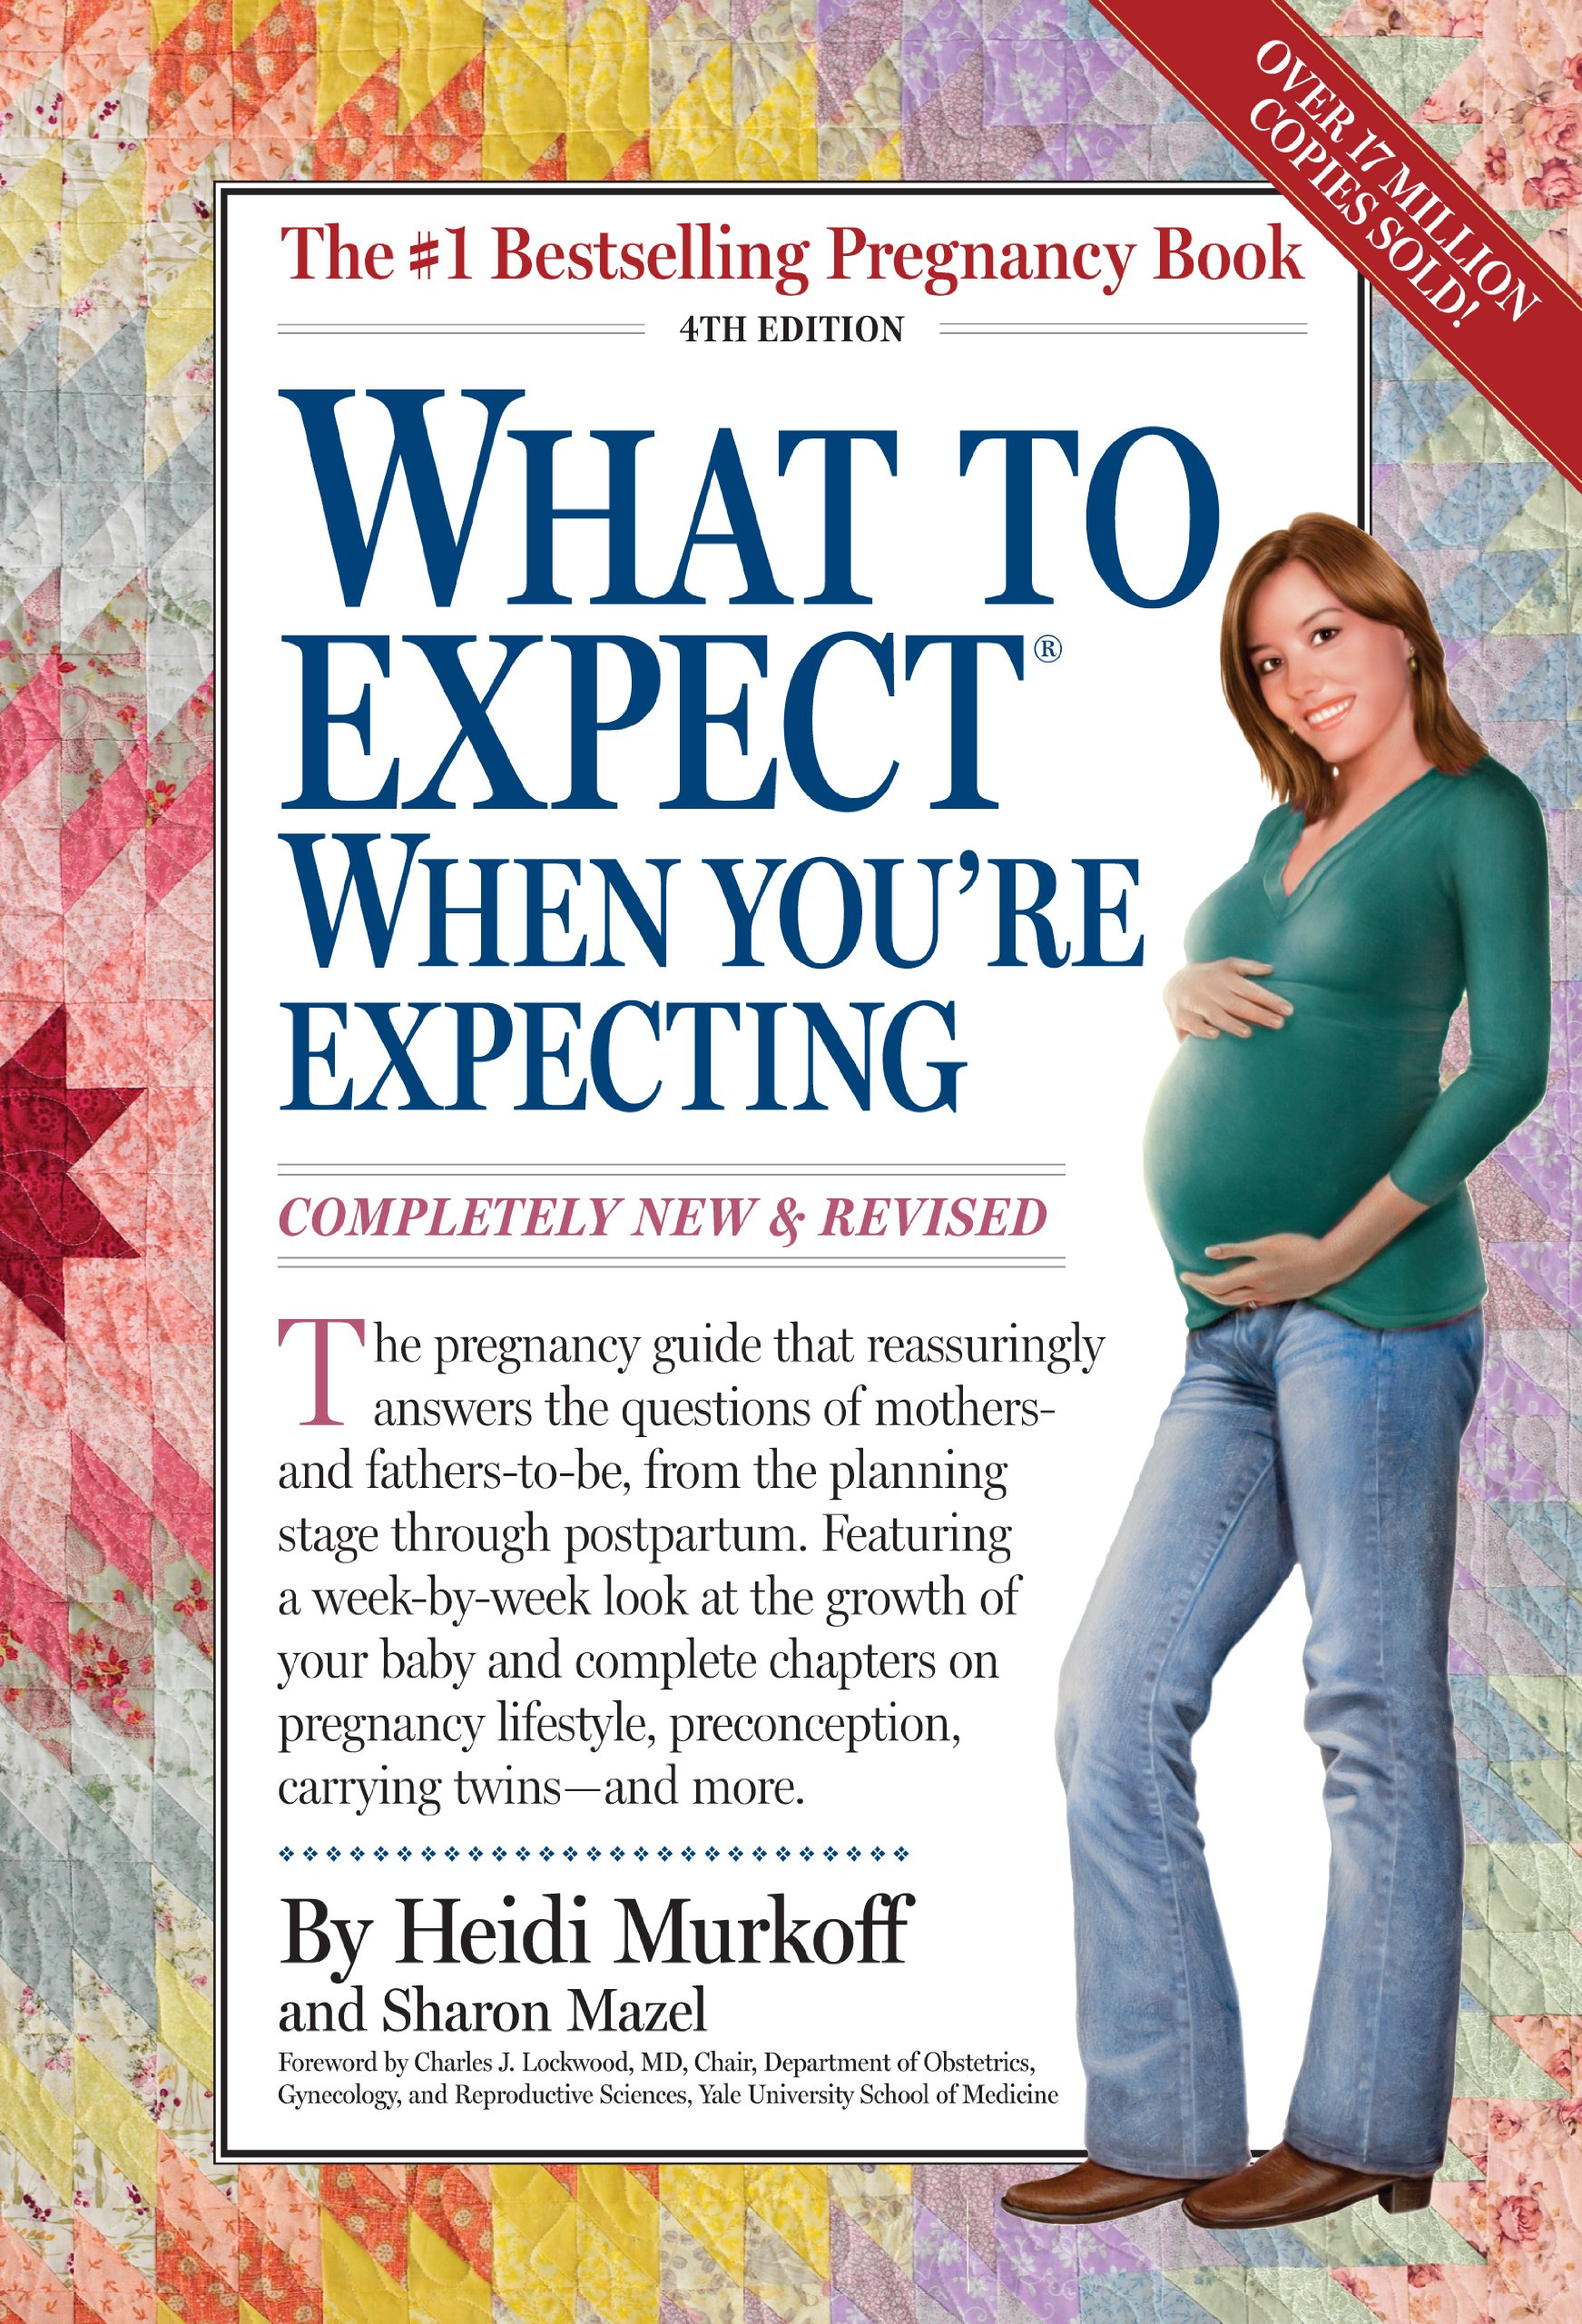 What to Expect When You're Expecting, 4th Edition - Heidi Murkoff